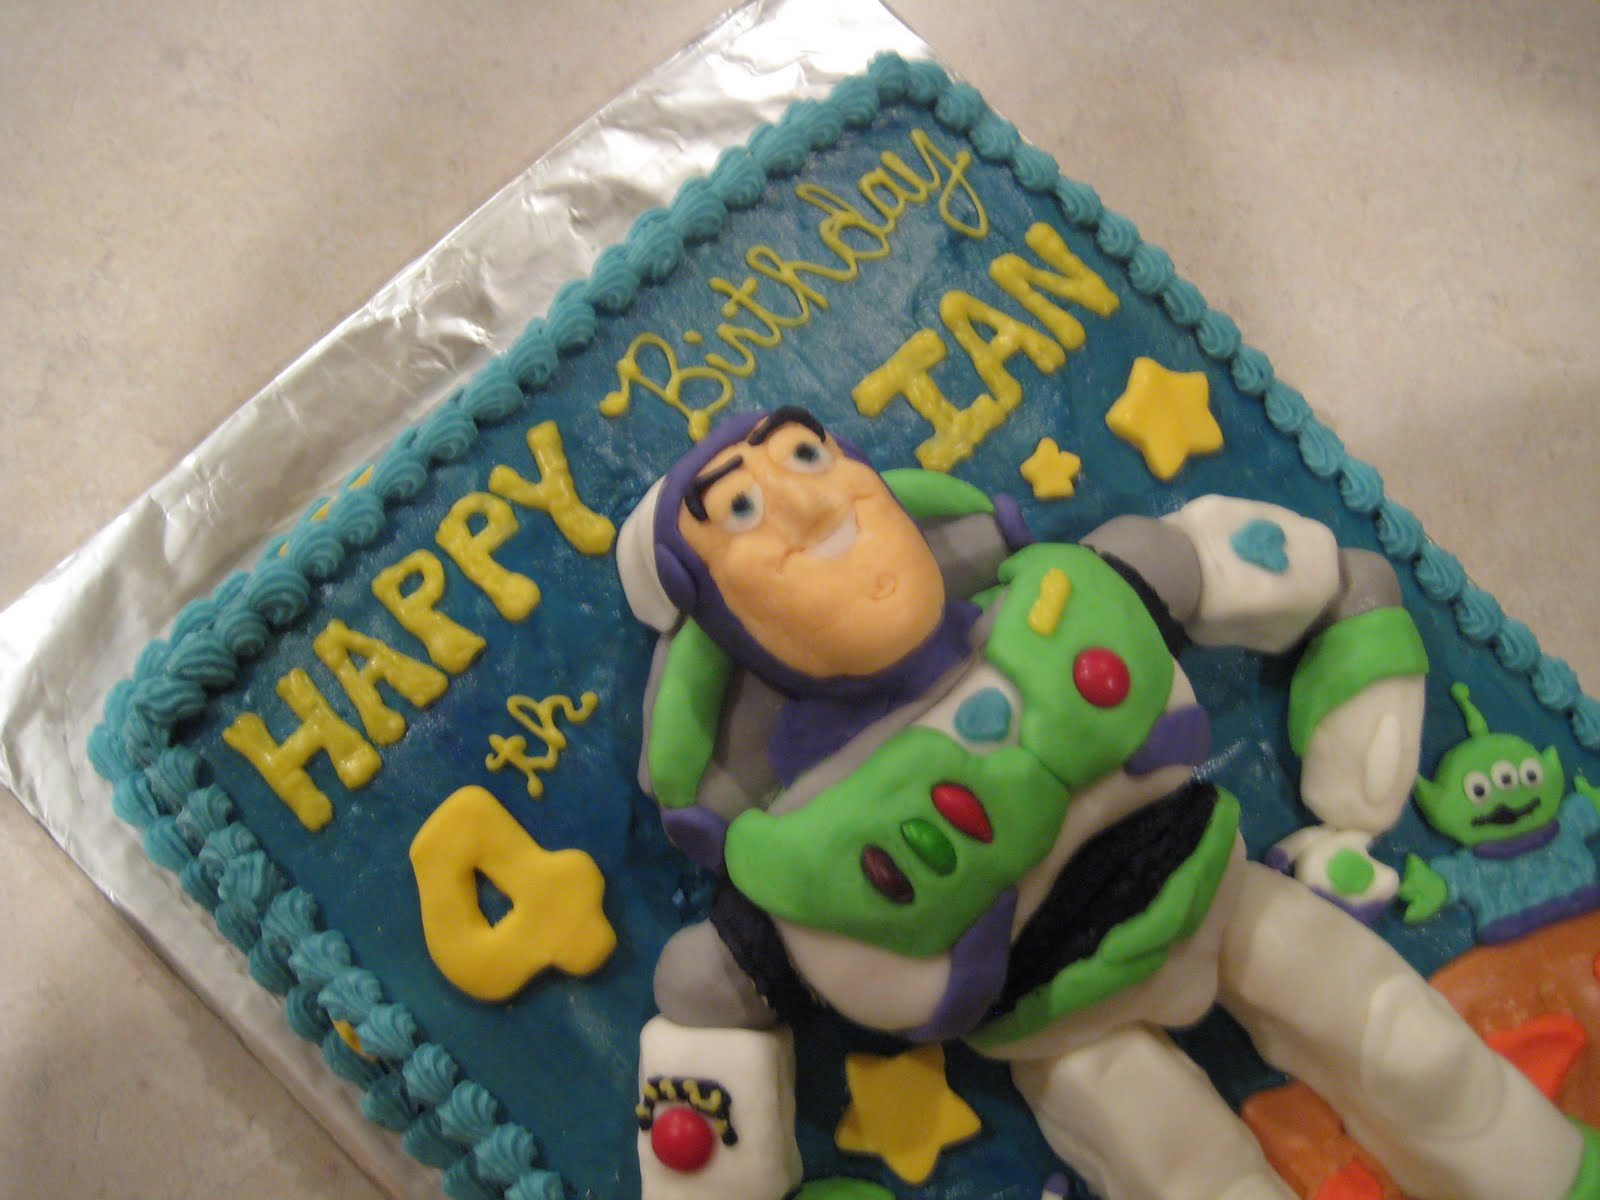 Toy Toppers For Cakes Wholes